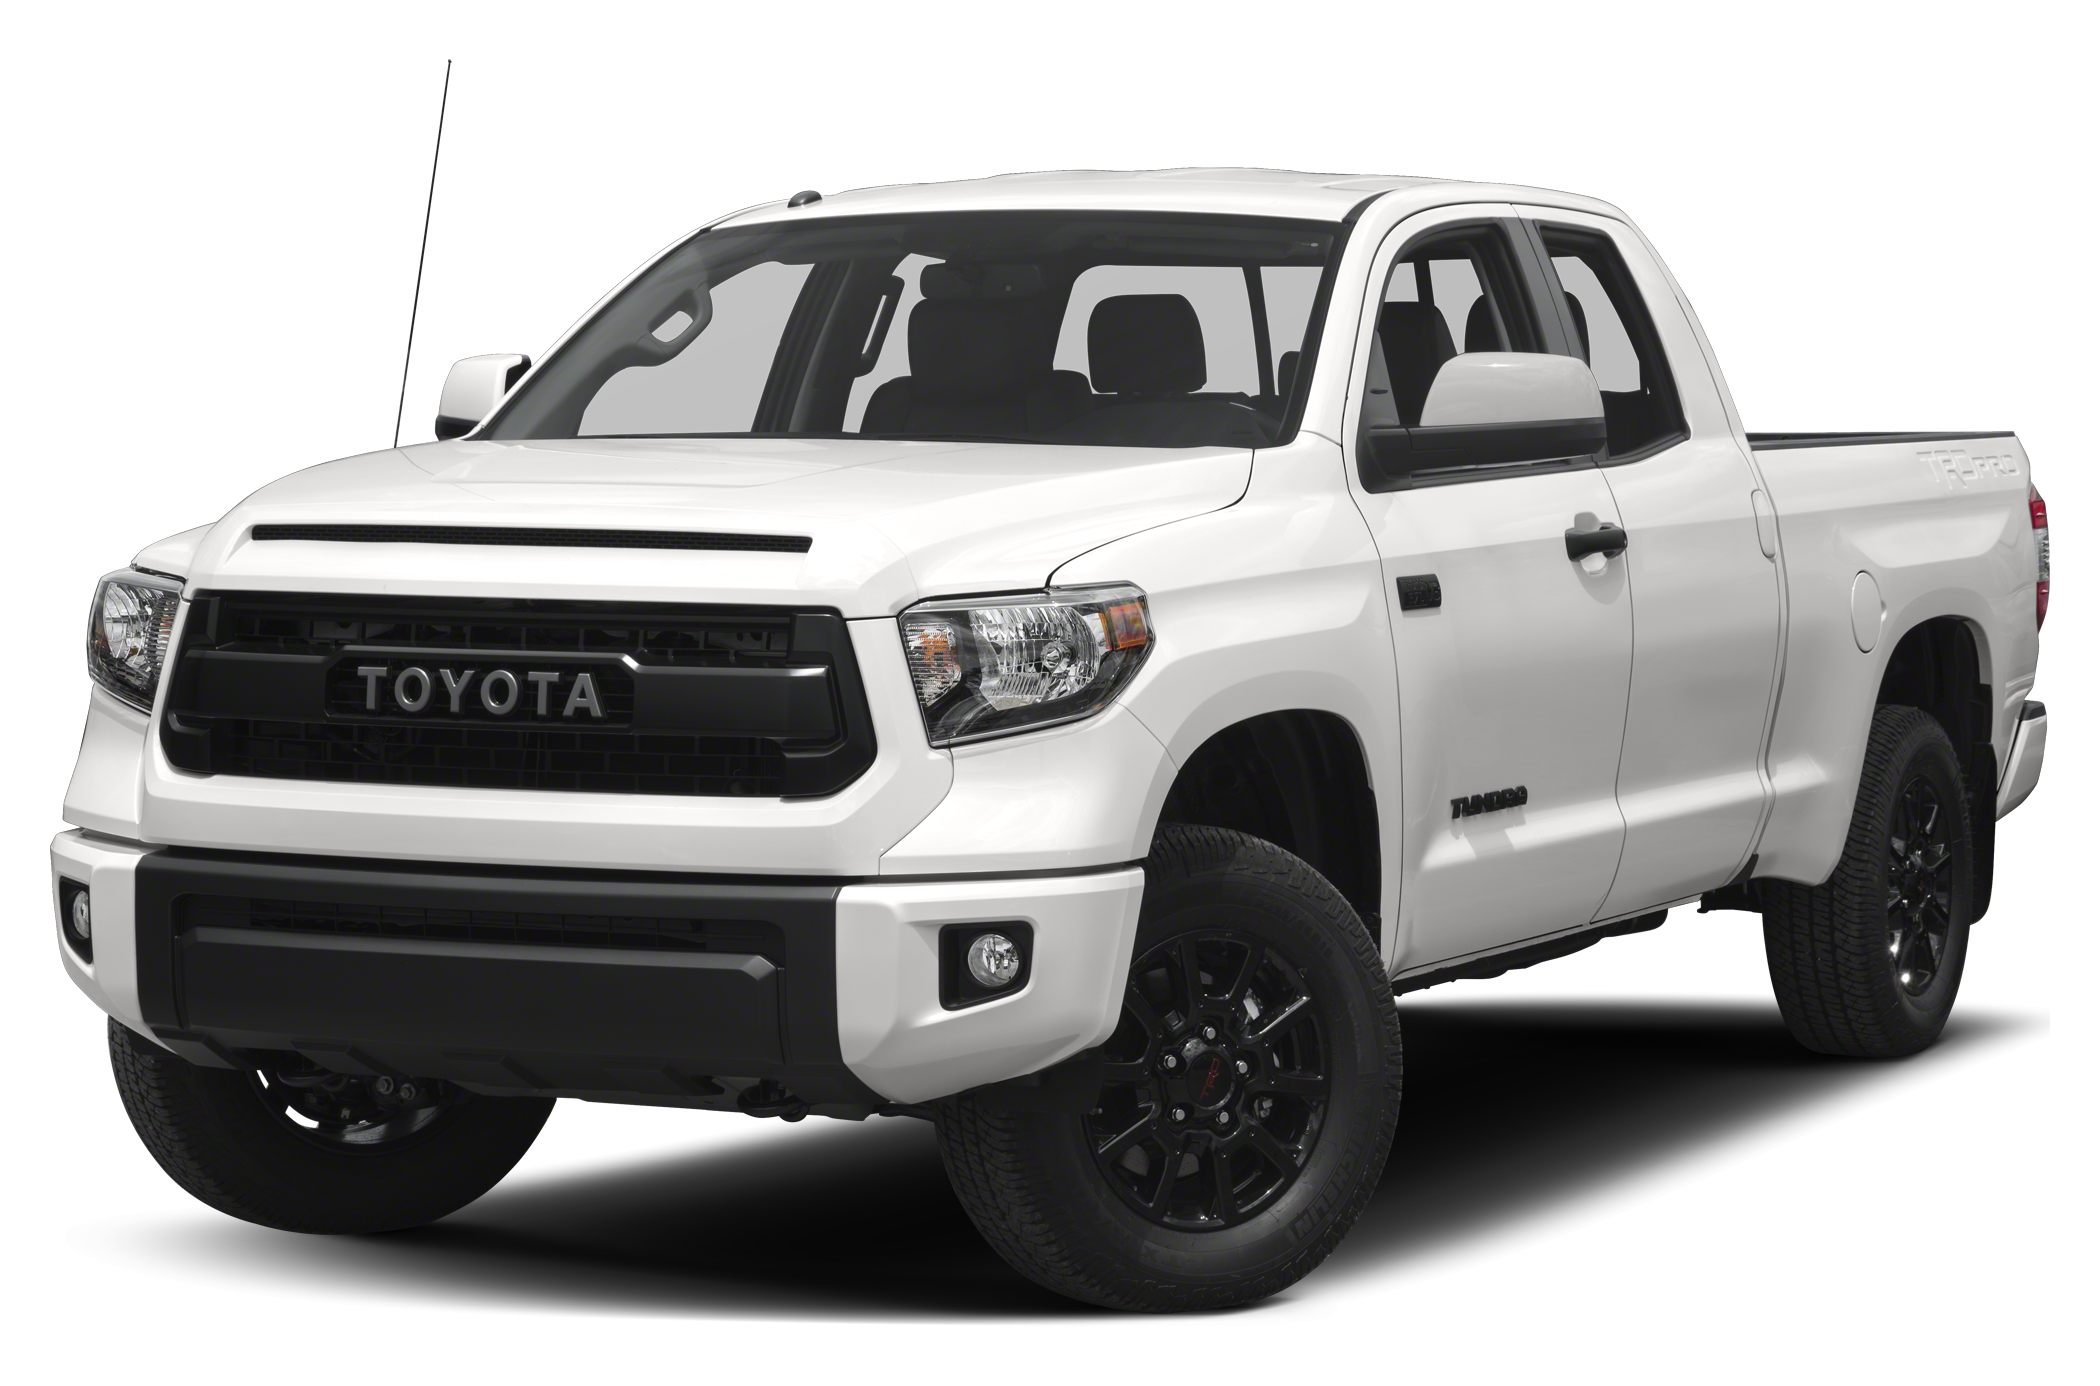 2017 Toyota Tundra Trd Pro 5 7l V8 4x4 Double Cab 6 Ft Box 145 7 In Wb For